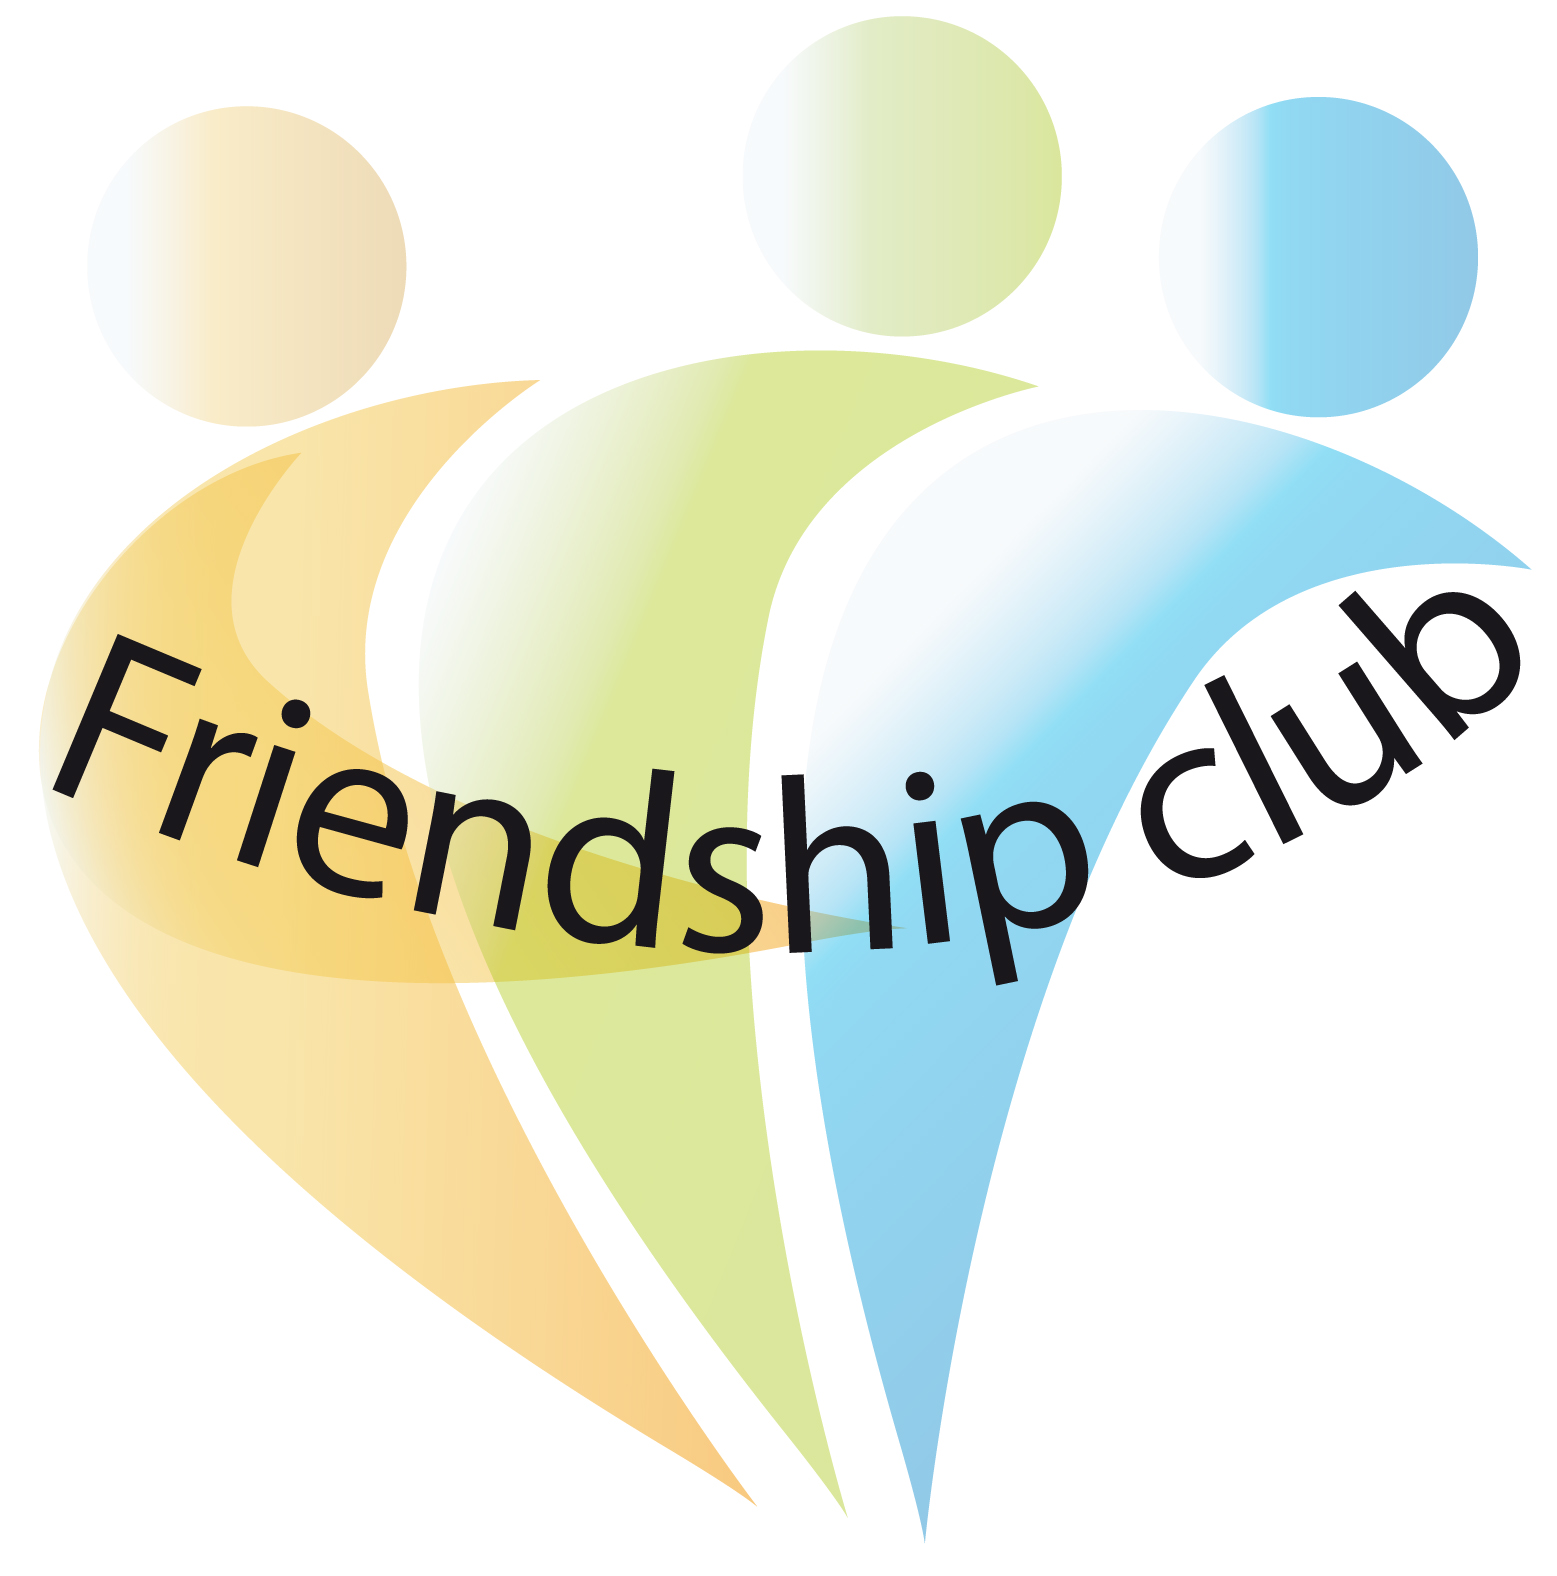 Friendship club near me